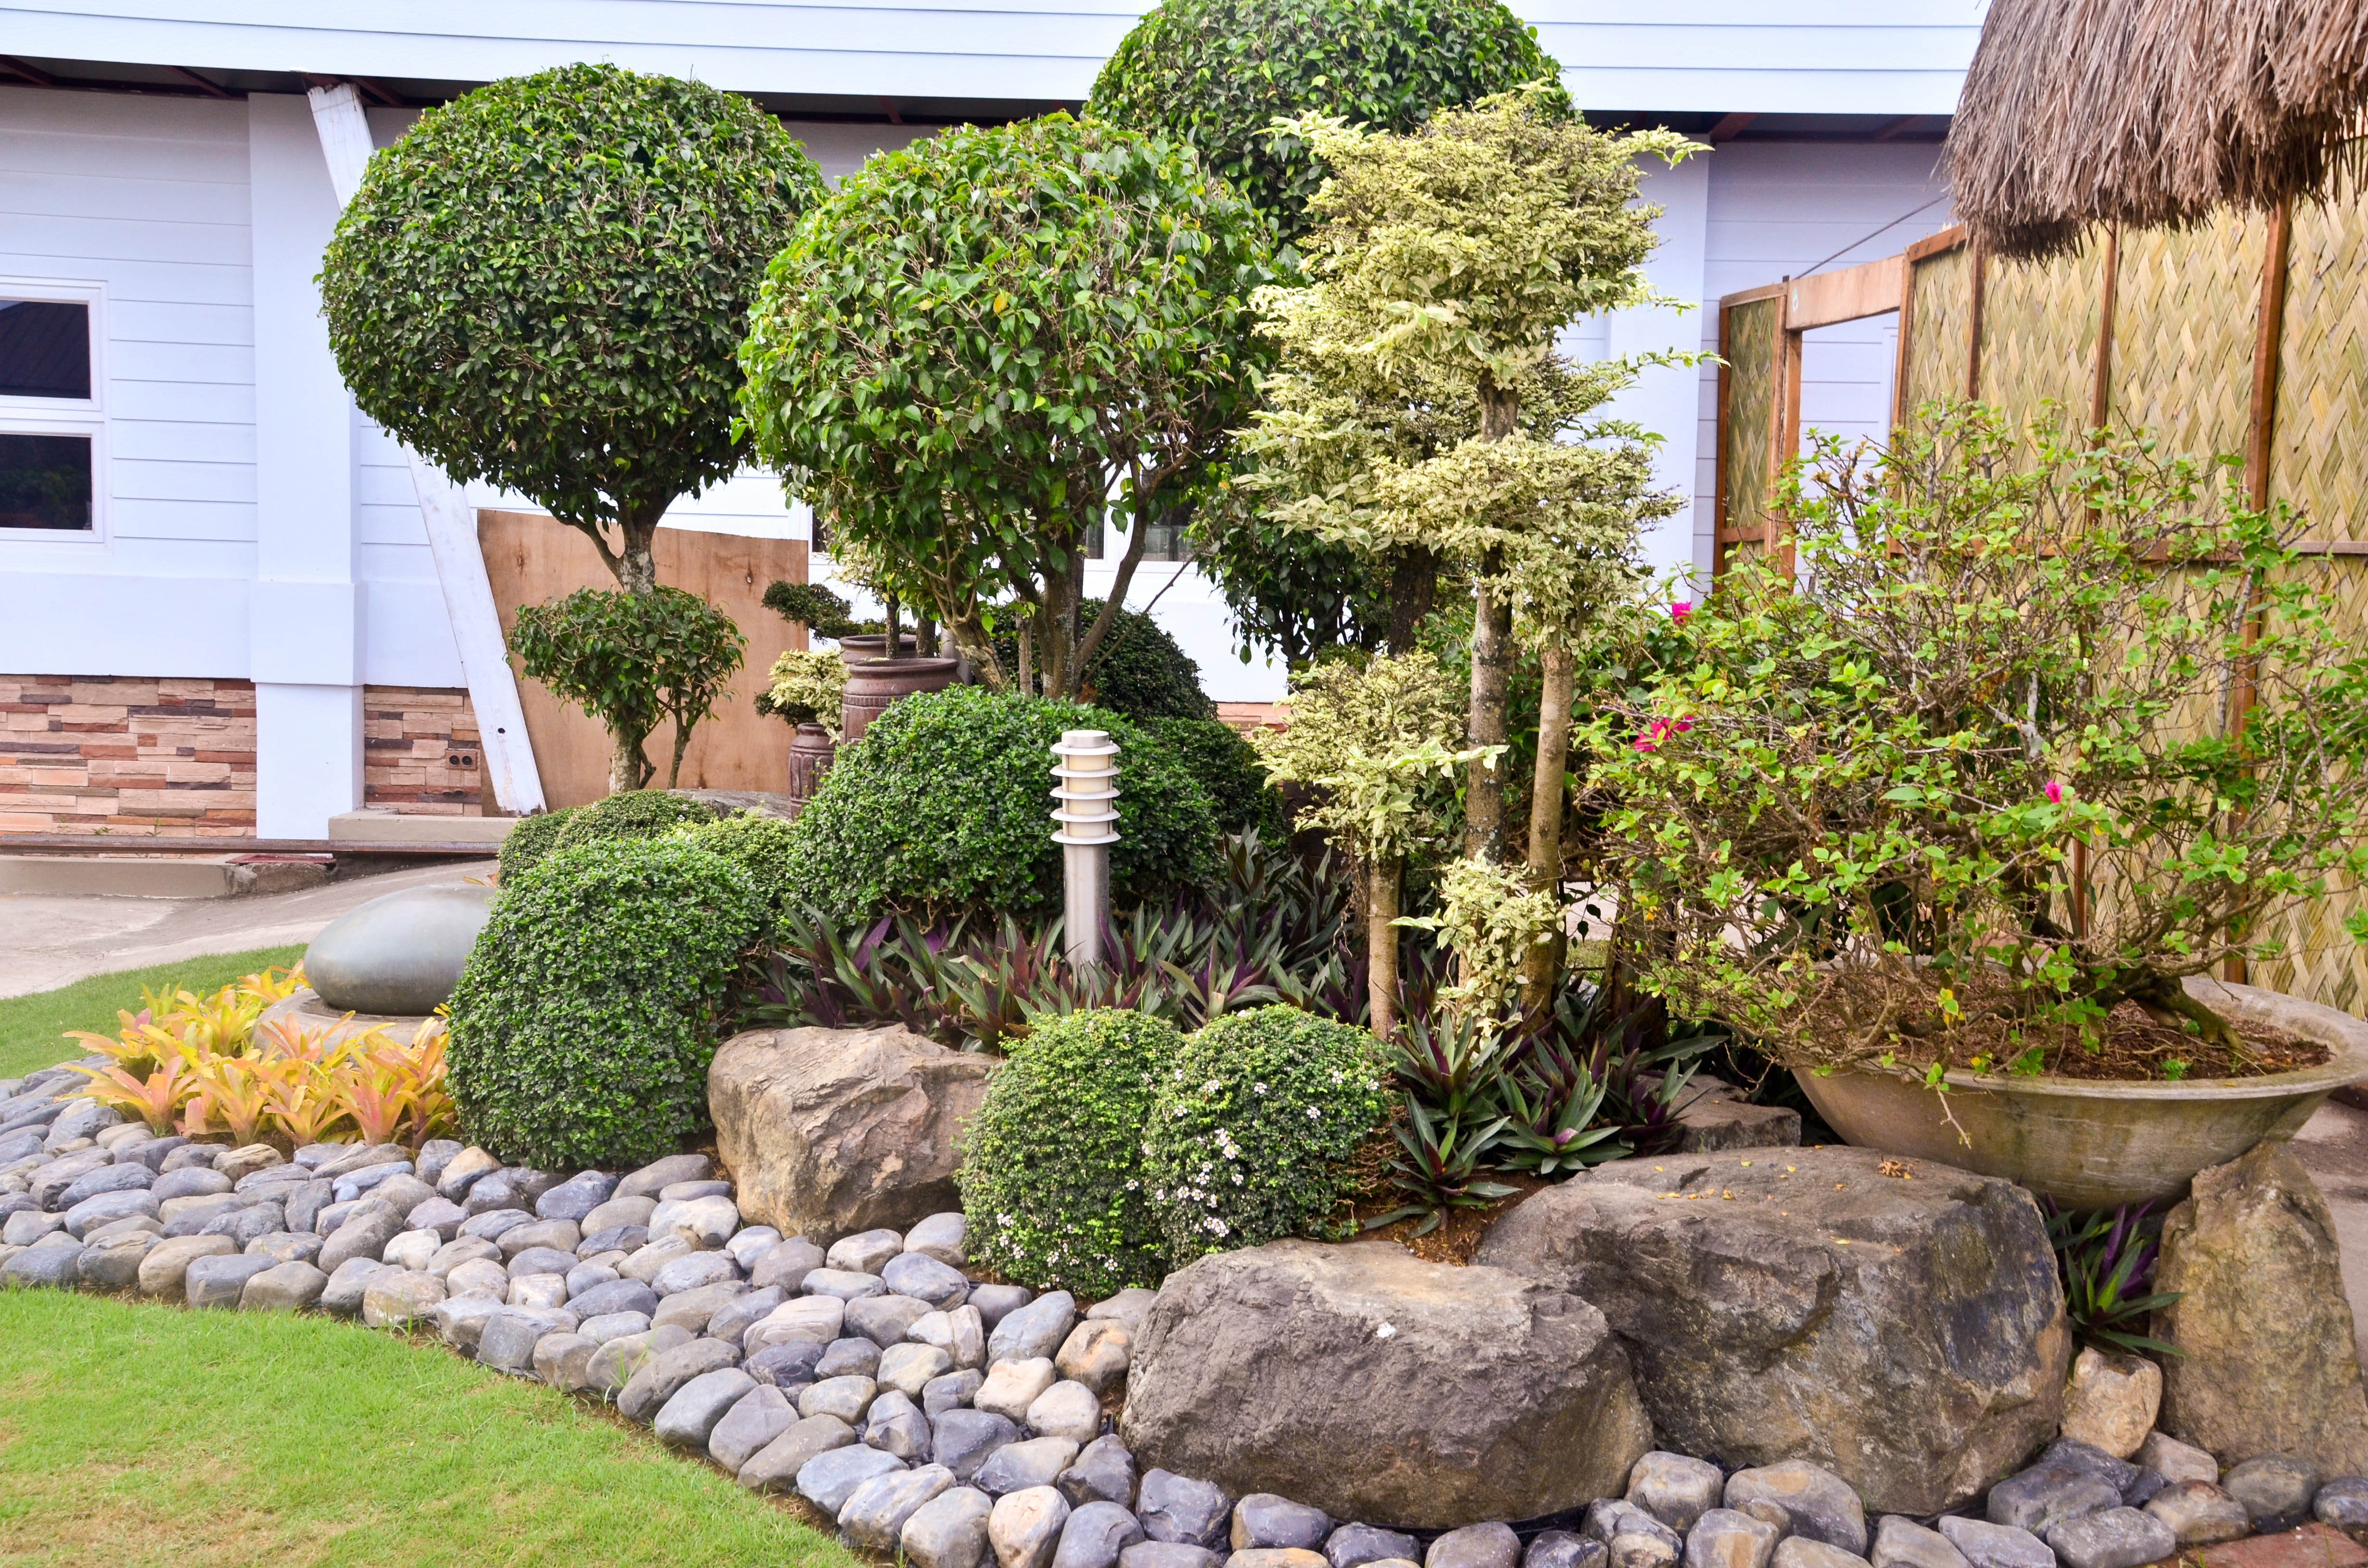 1 Landscaping How to Landscape With Rocks 6 Steps with